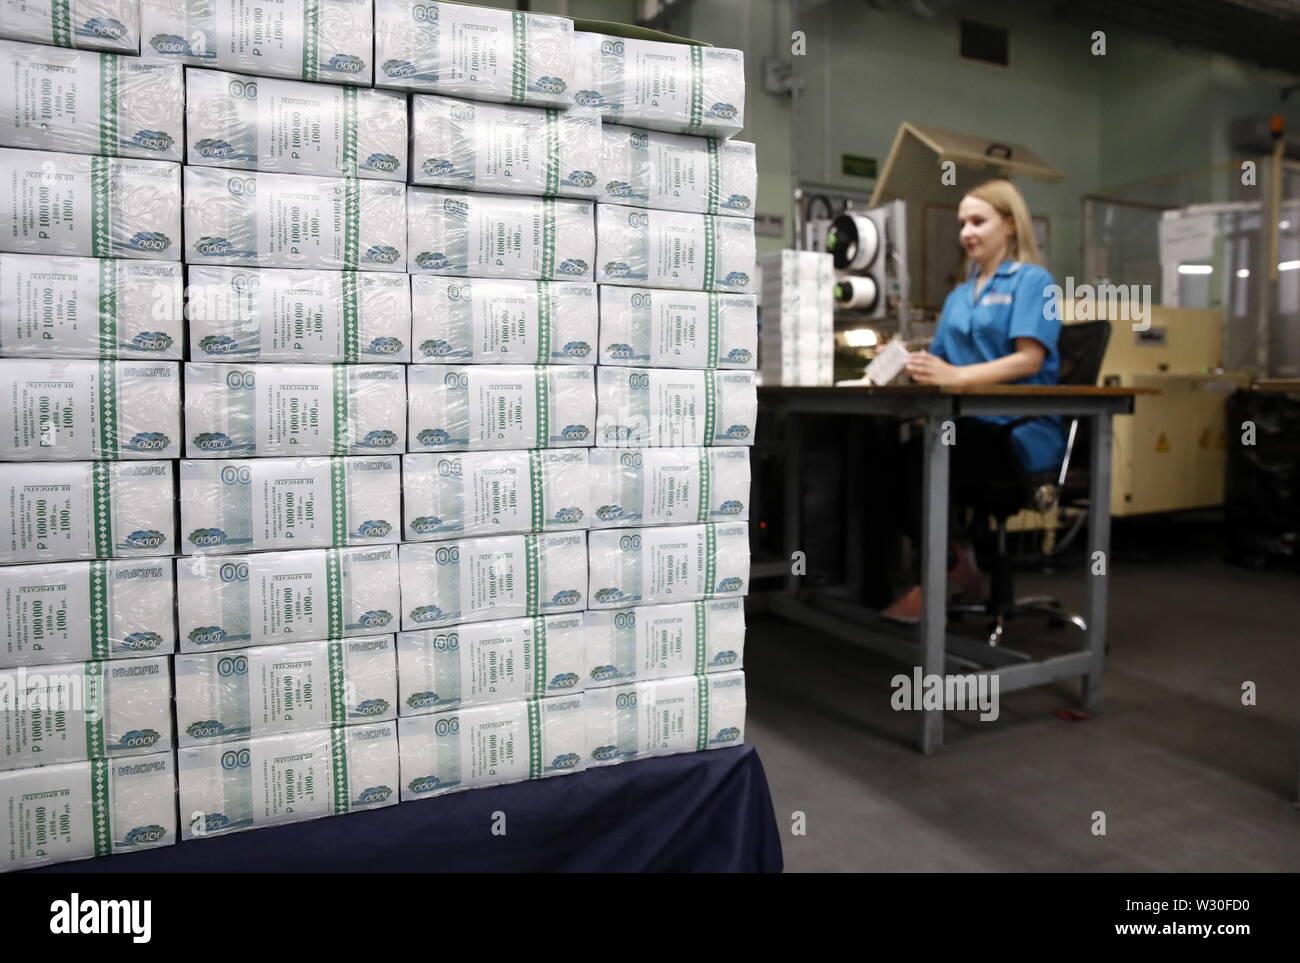 Moscow, Russia. 11th July, 2019. MOSCOW, RUSSIA - JULY 11, 2019: Packs of Russian 1,000-rouble banknotes at the Moscow Printing Factory owned by Goznak; the enterprise and its branch both celebrating their centenaries in 2019. Artyom Geodakyan/TASS Credit: ITAR-TASS News Agency/Alamy Live News - Stock Image